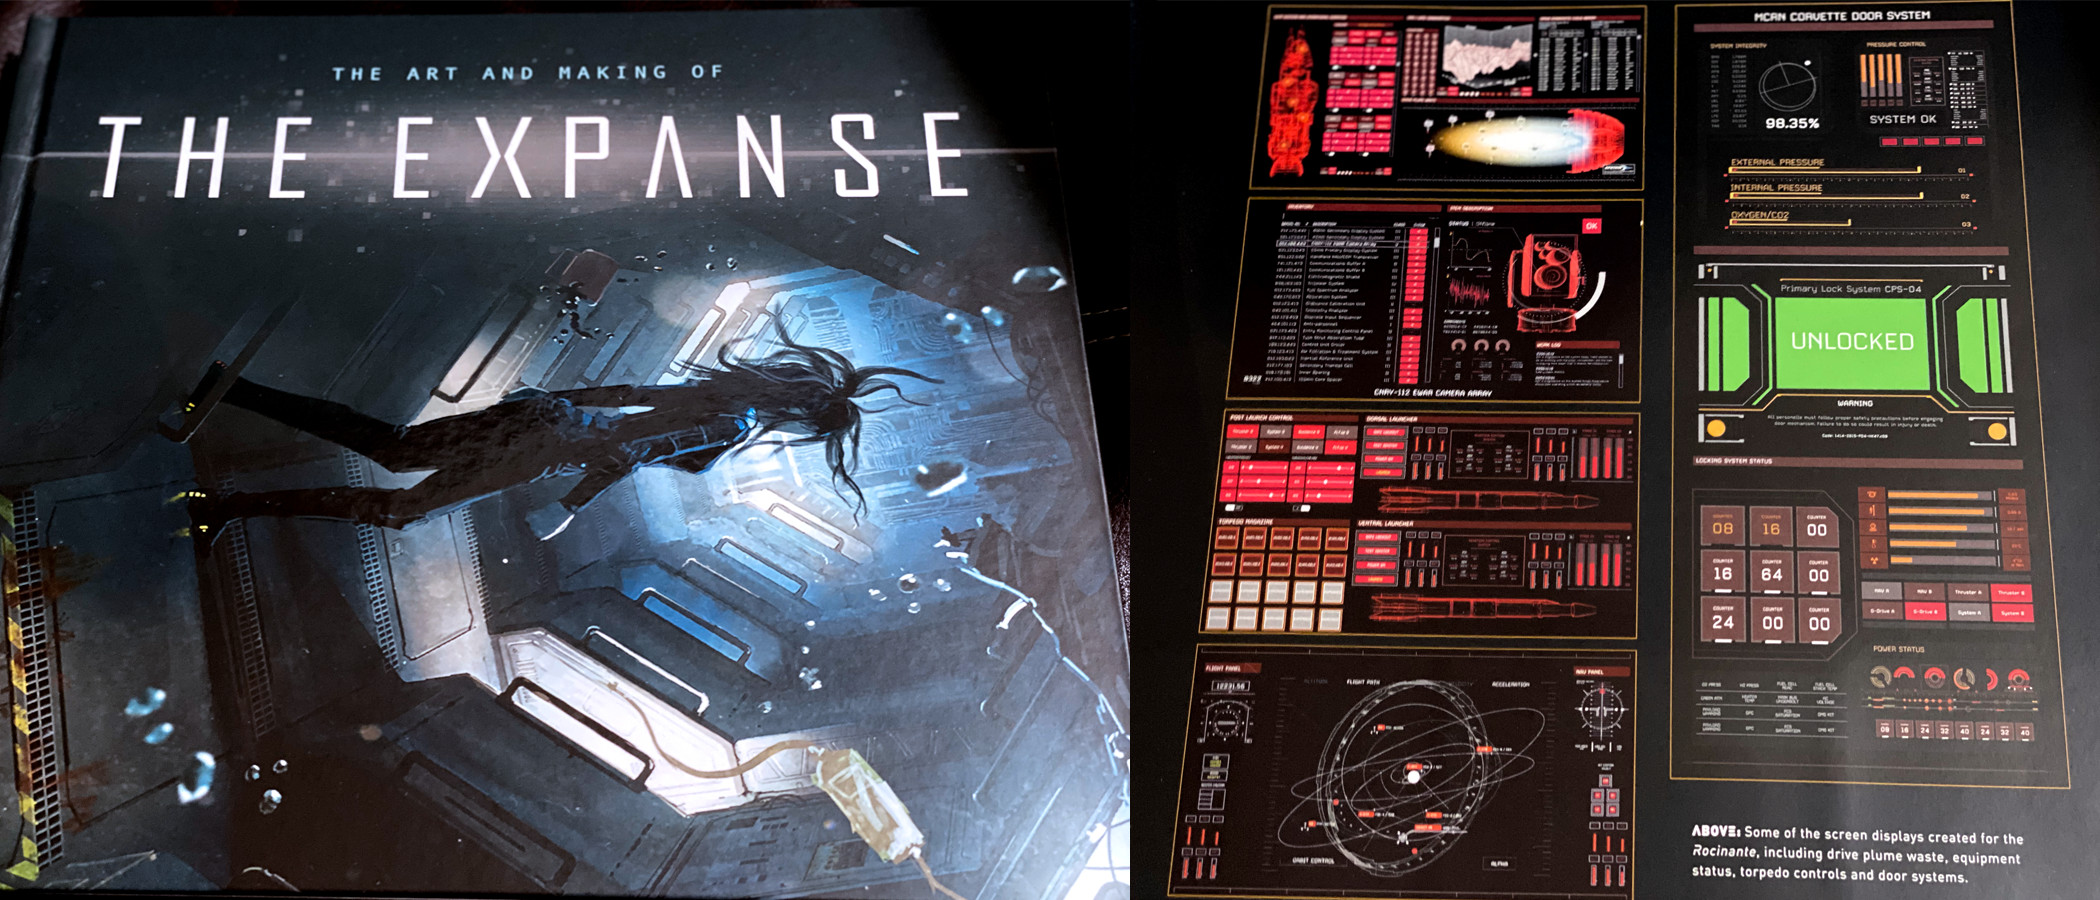 Some of these designs were featured in The Art of The Expanse book.